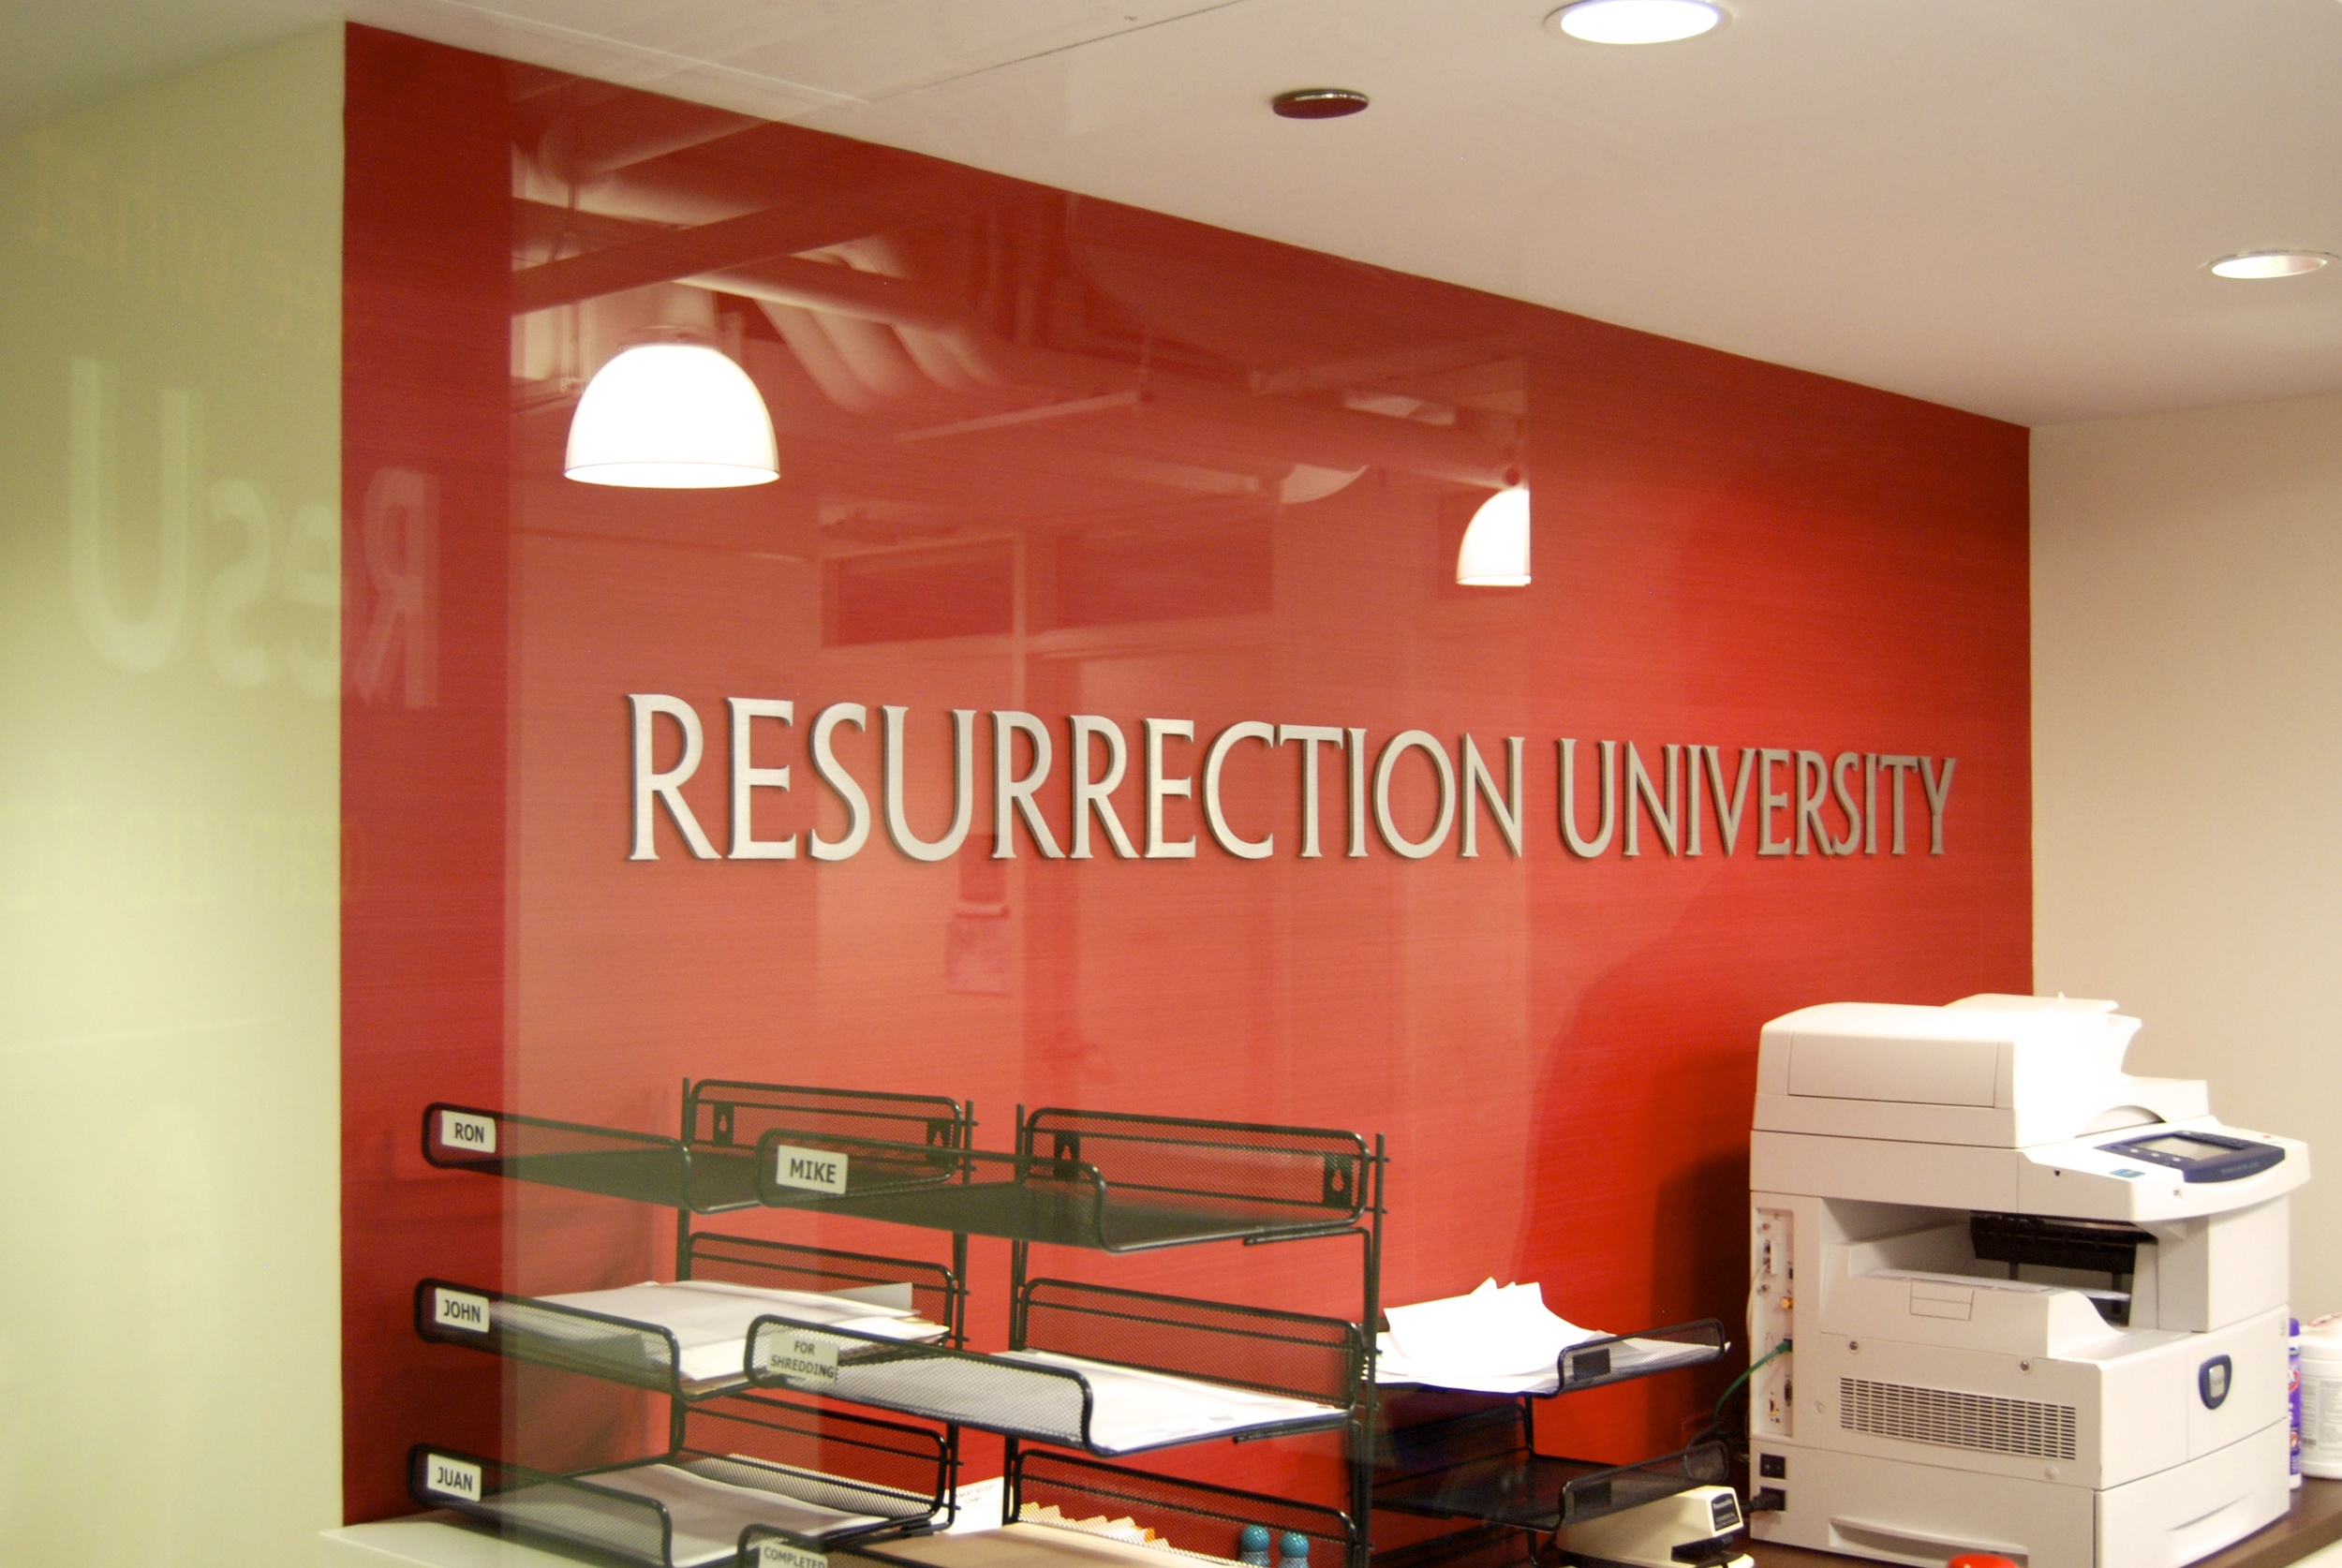 Dimensional lettering and installation by Ndio. Design by Perkins+Will.